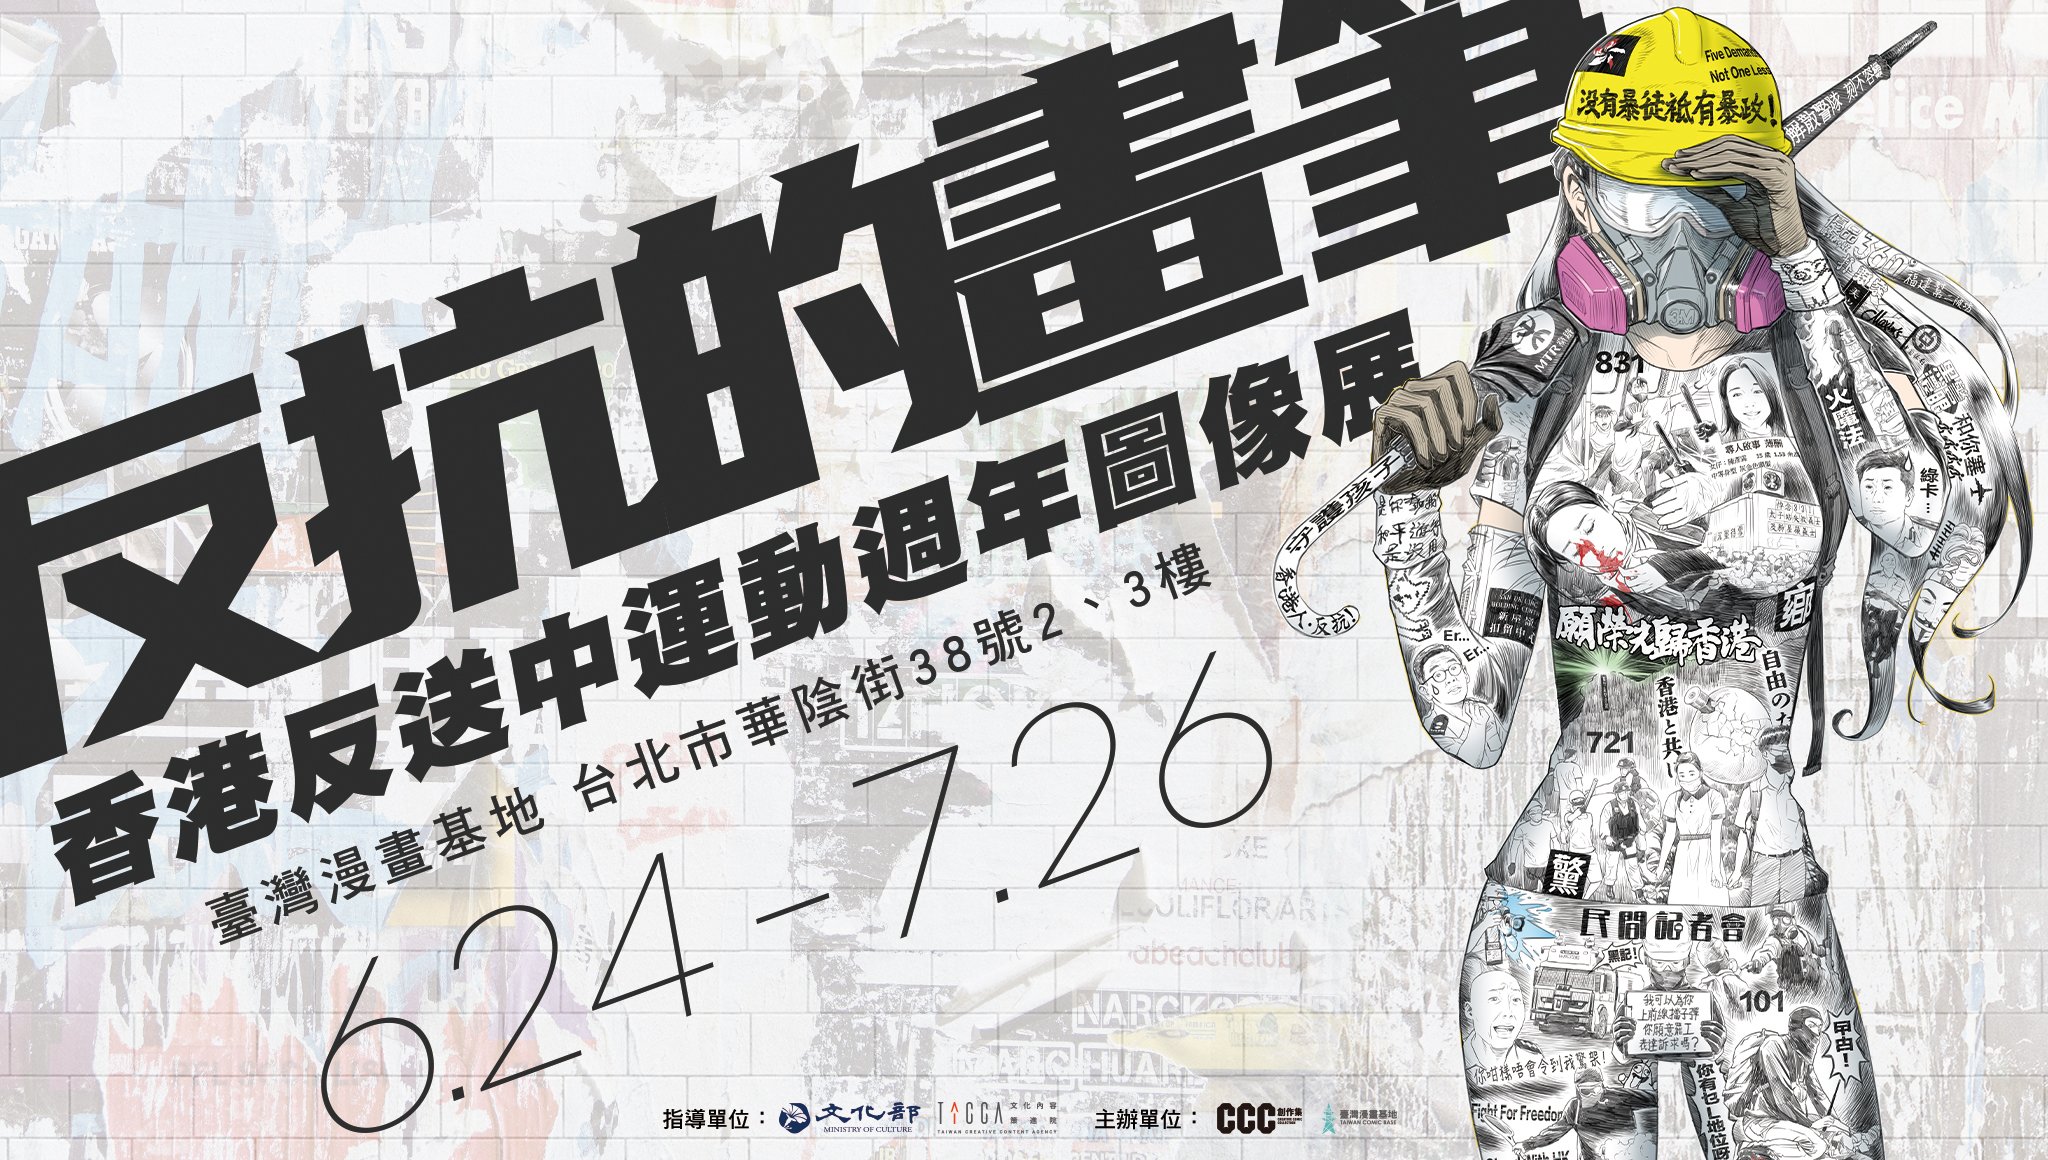 Brushes of Resistance – One-Year Anniversary Exhibition of Imagery from the Hong Kong Anti-ELAB Movement.